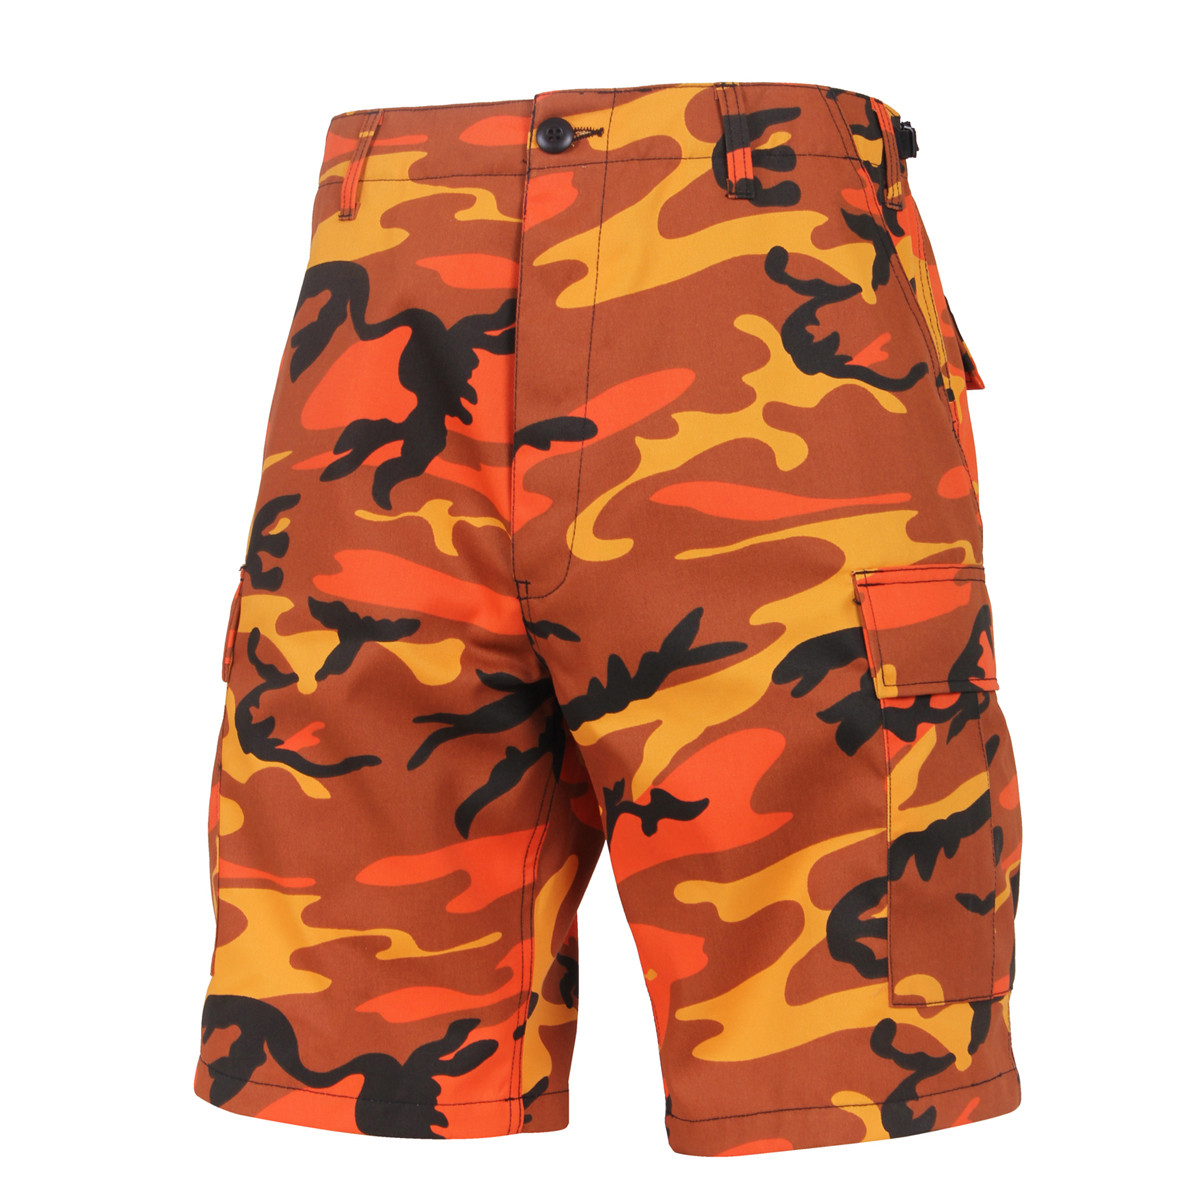 bae3abc8a013b Shop Rothco Orange Camo Shorts - Fatigues Army Navy Gear